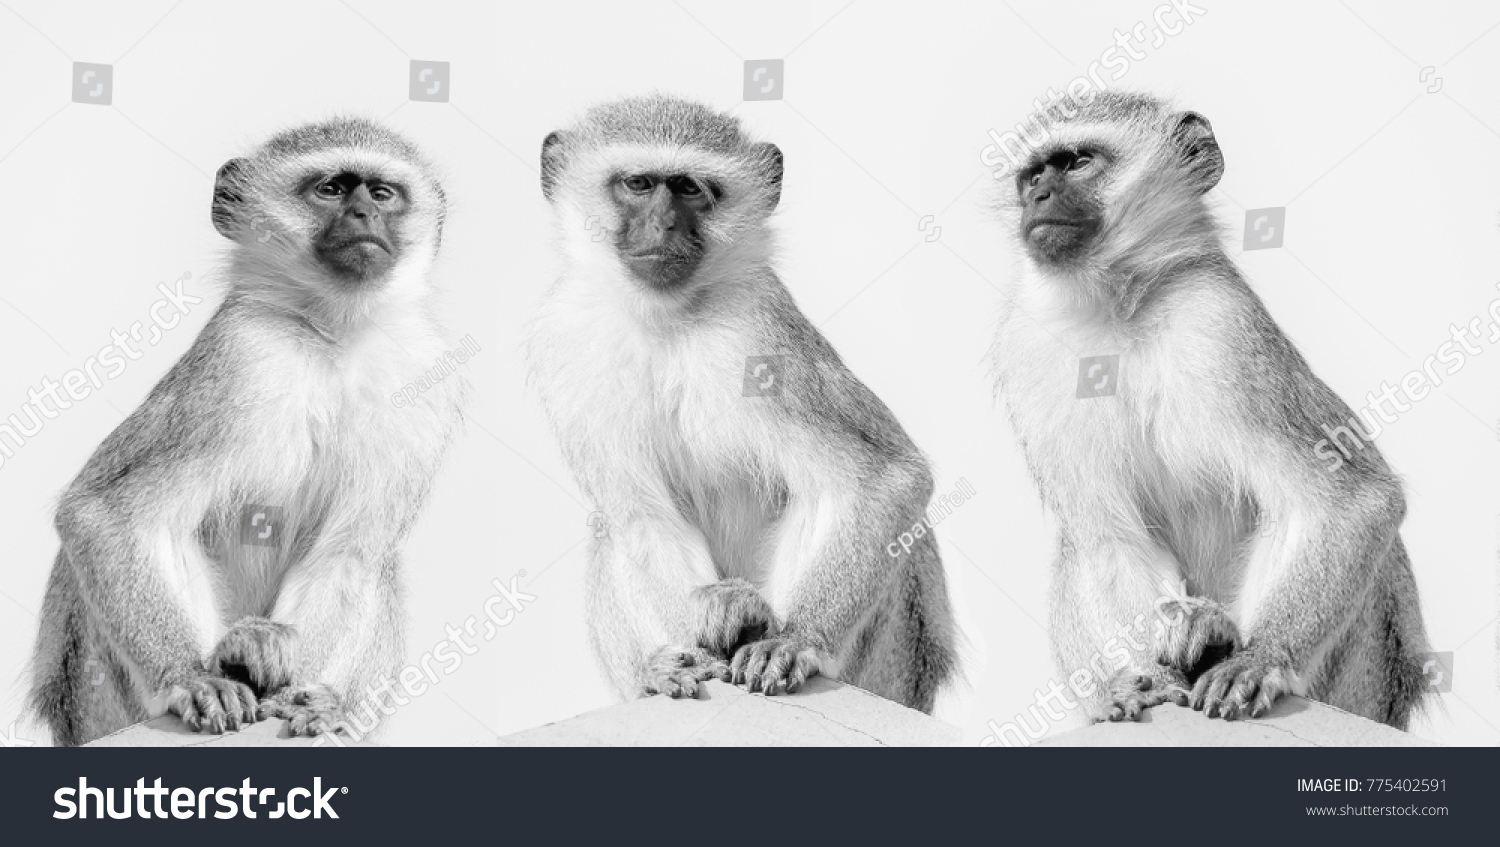 stock-photo-vervet-monkeys-in-black-and-